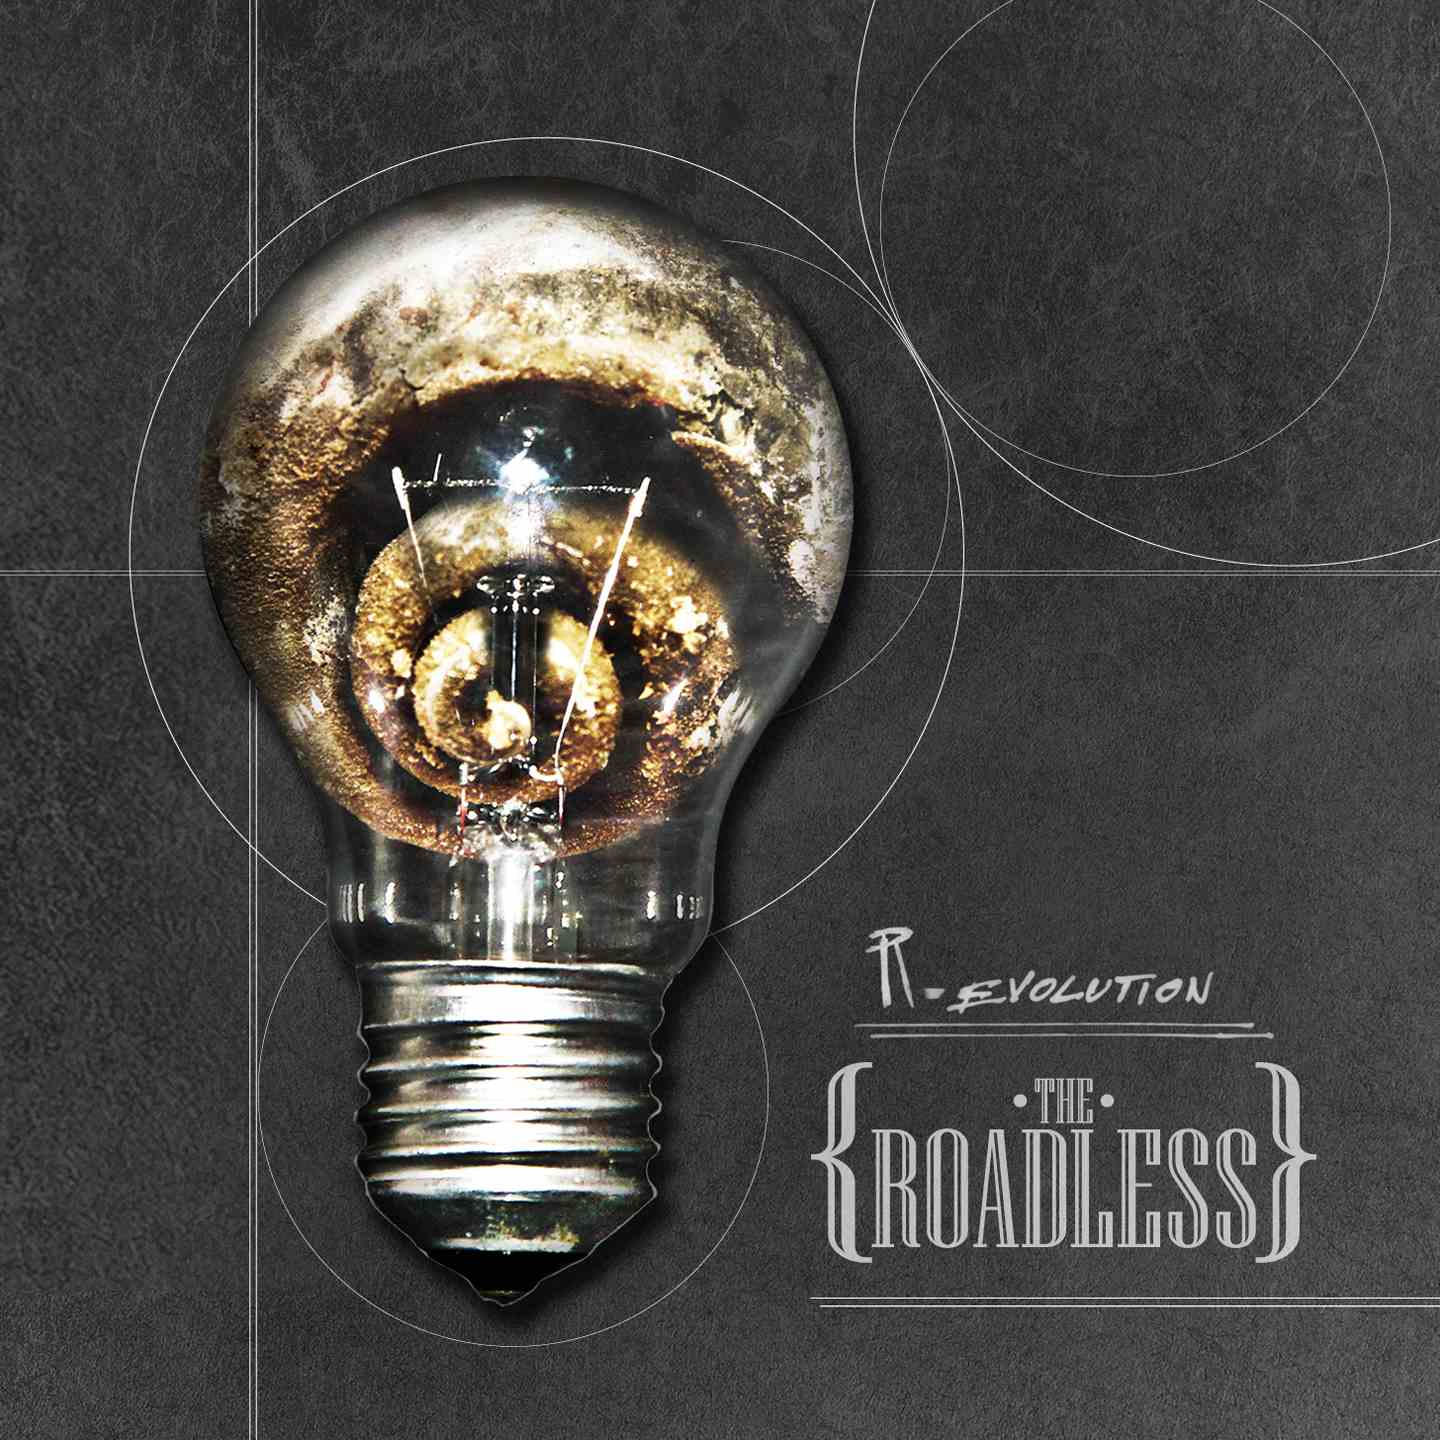 Nuovo album per i veronesi The Roadless